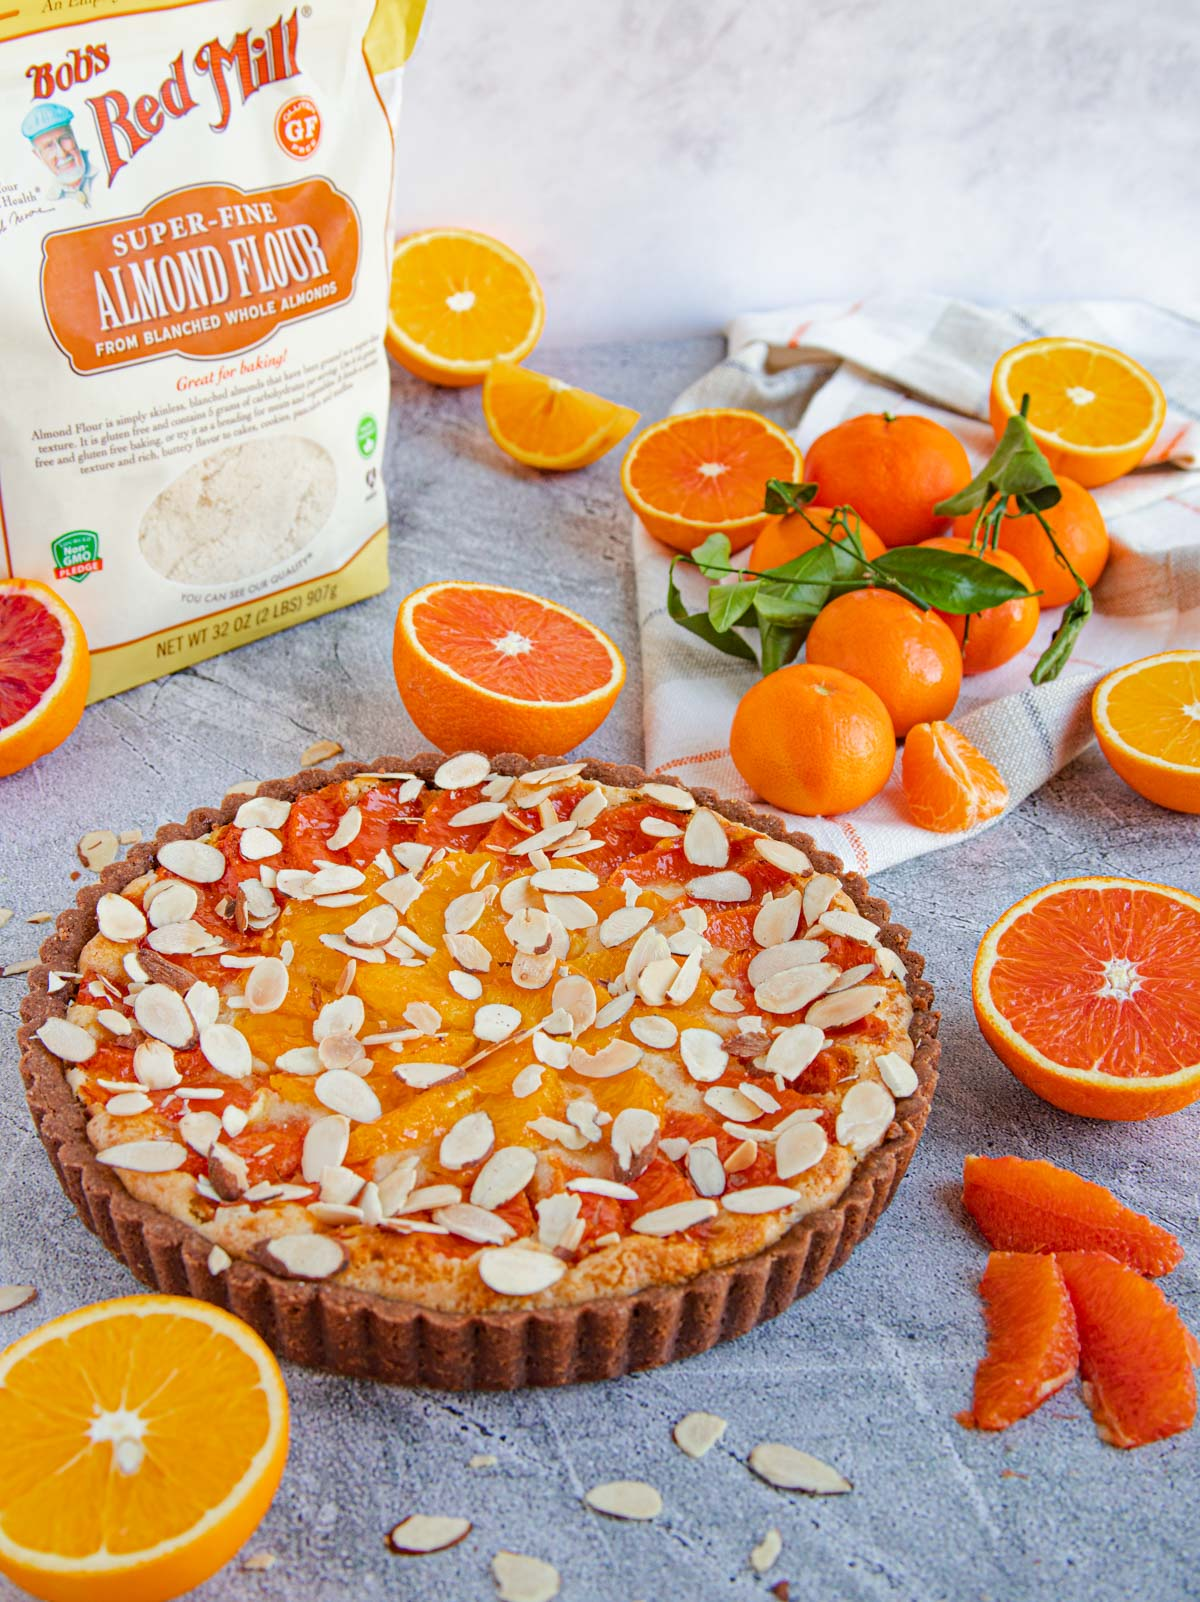 Orange and Chocolate Almond Tart with Package of Bob's Red Mill Almond Flour